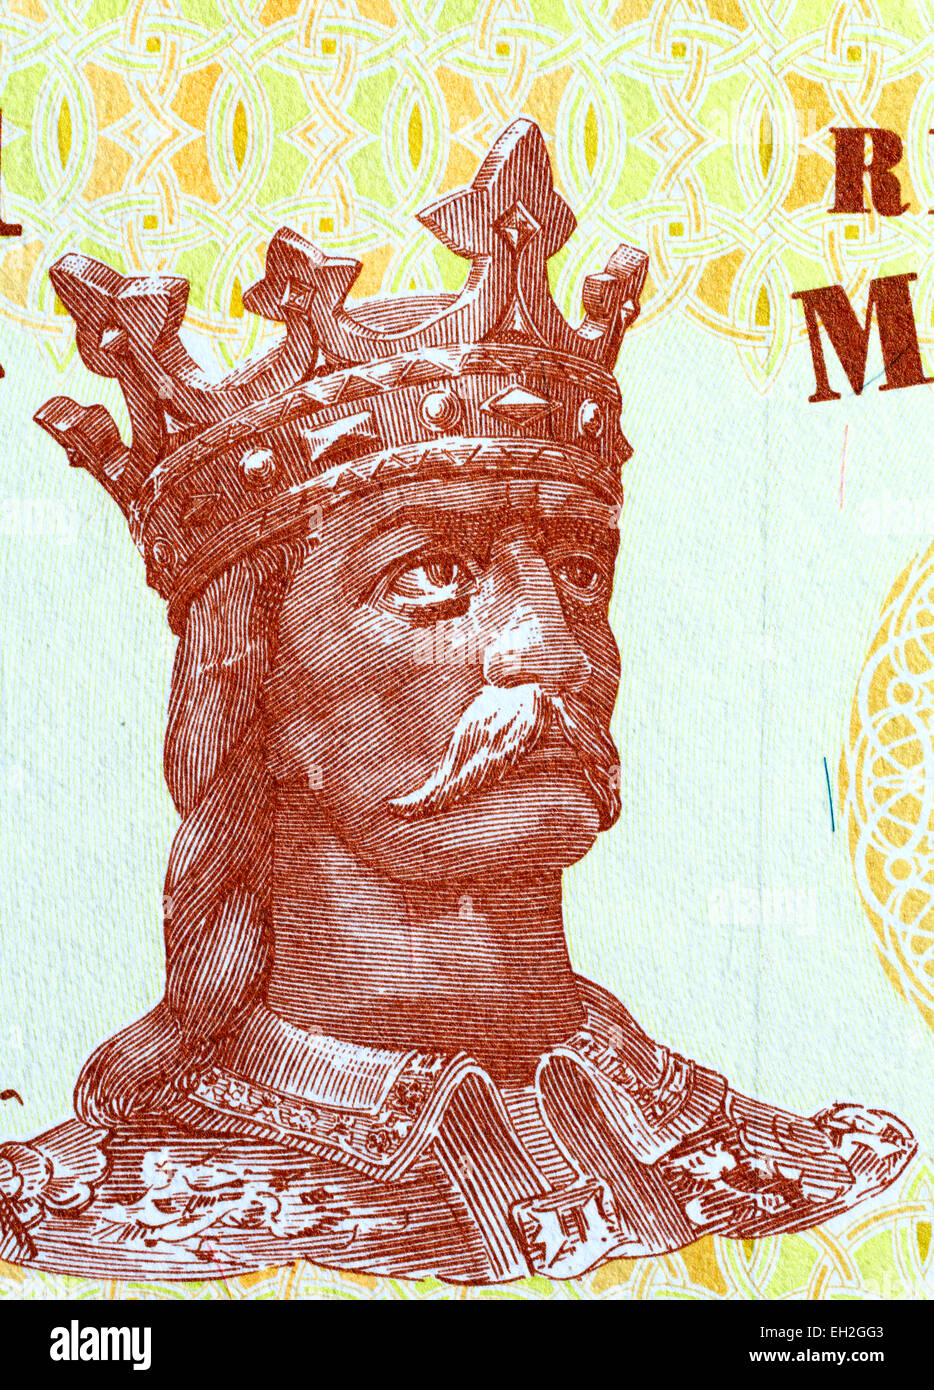 Stephen Musat III the Great (Stefan cel Mare) from 1 Leu banknote, Moldova, 2010 - Stock Image